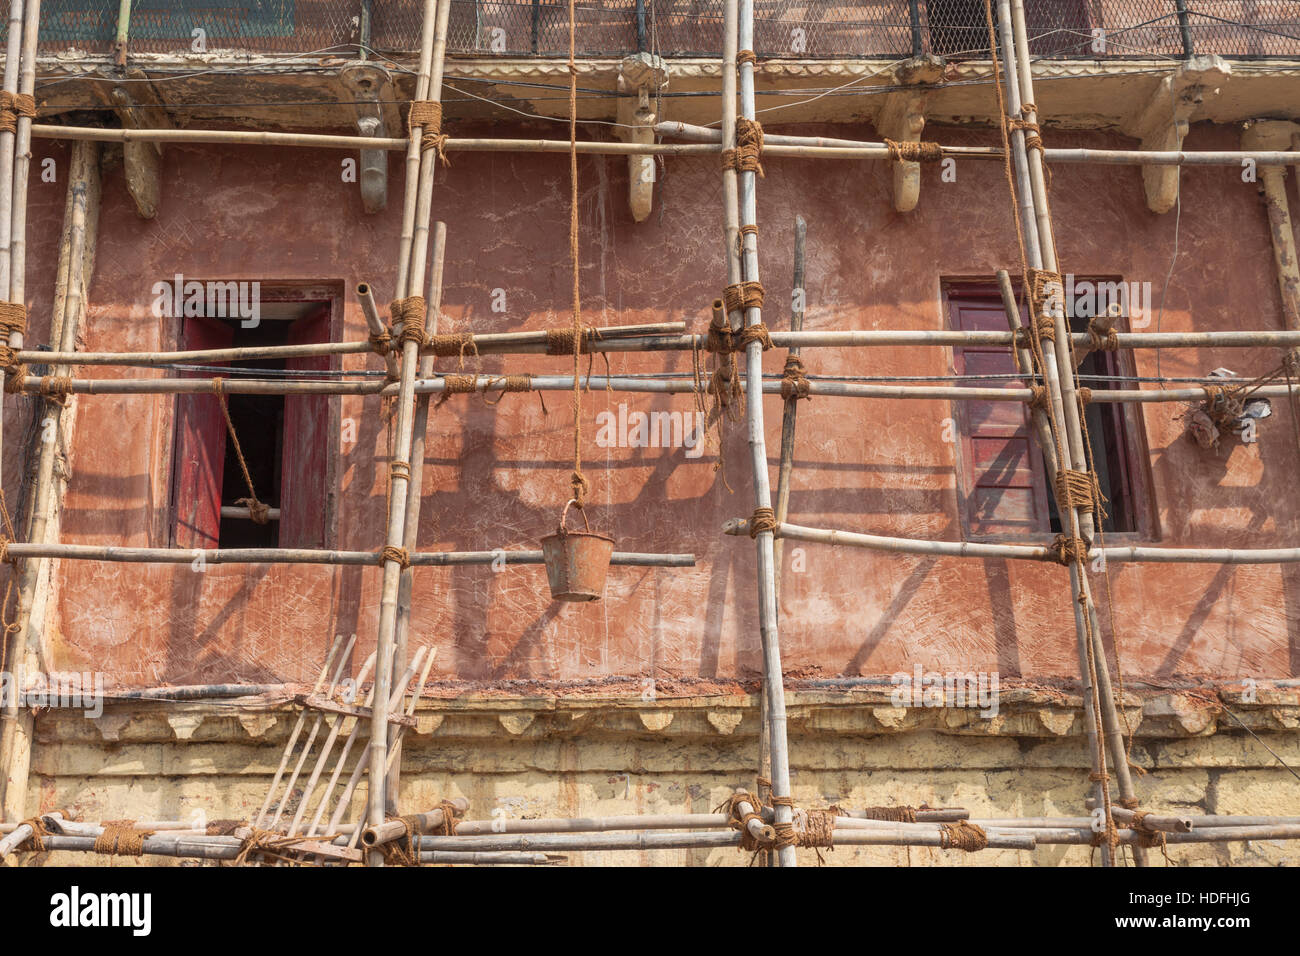 Building site with construction work, showing timber scaffolding, Udaipur, Rajasthan, India - Stock Image